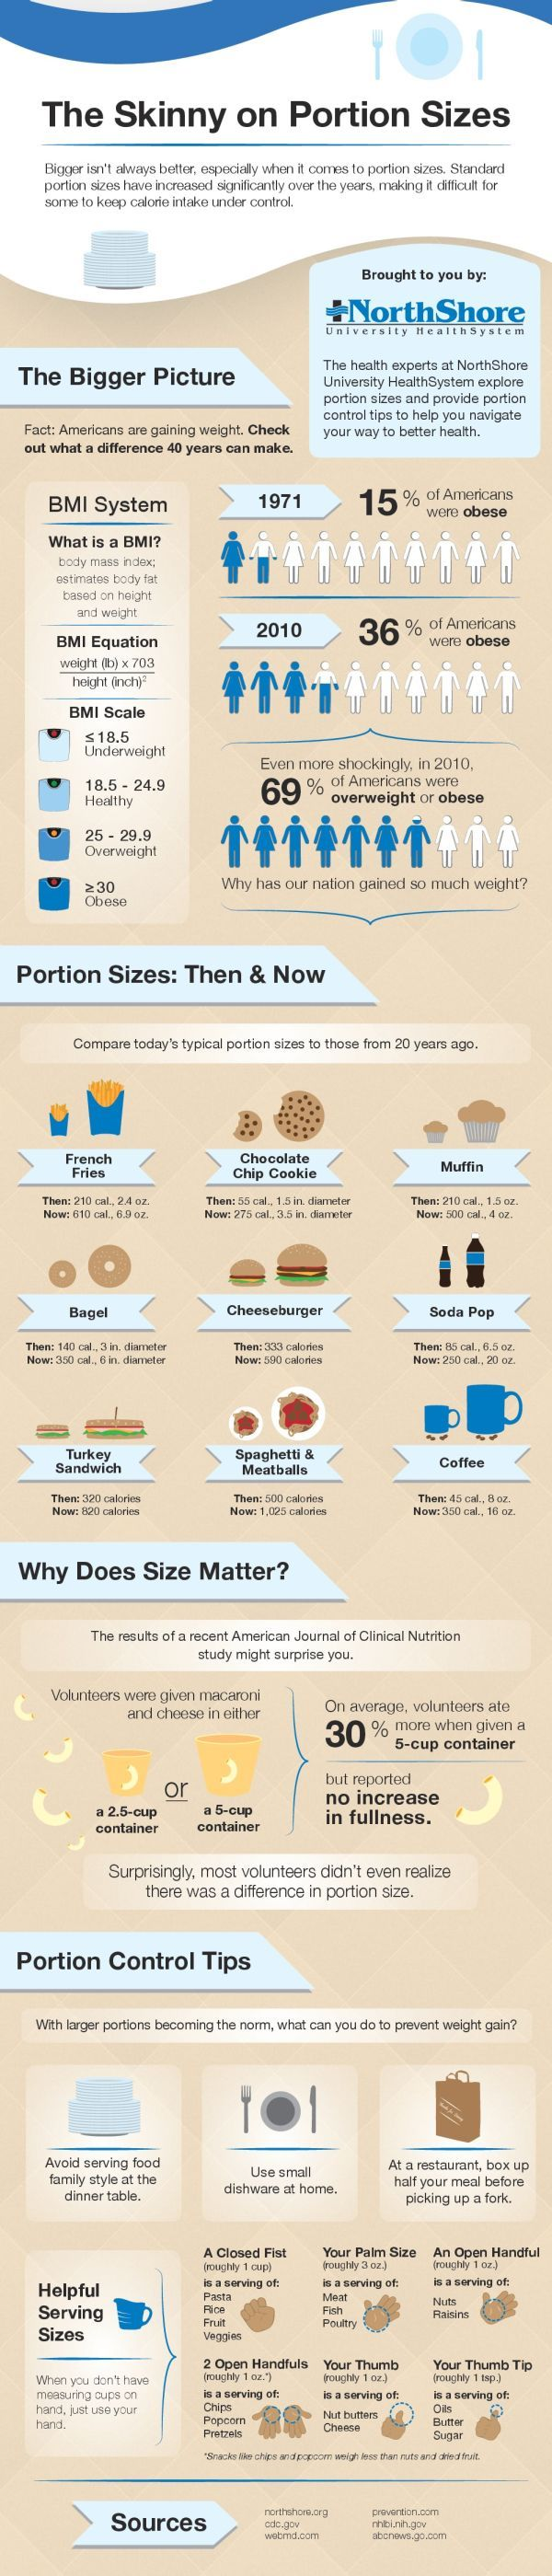 Infographic: Bigger isn't better when it comes to portion size